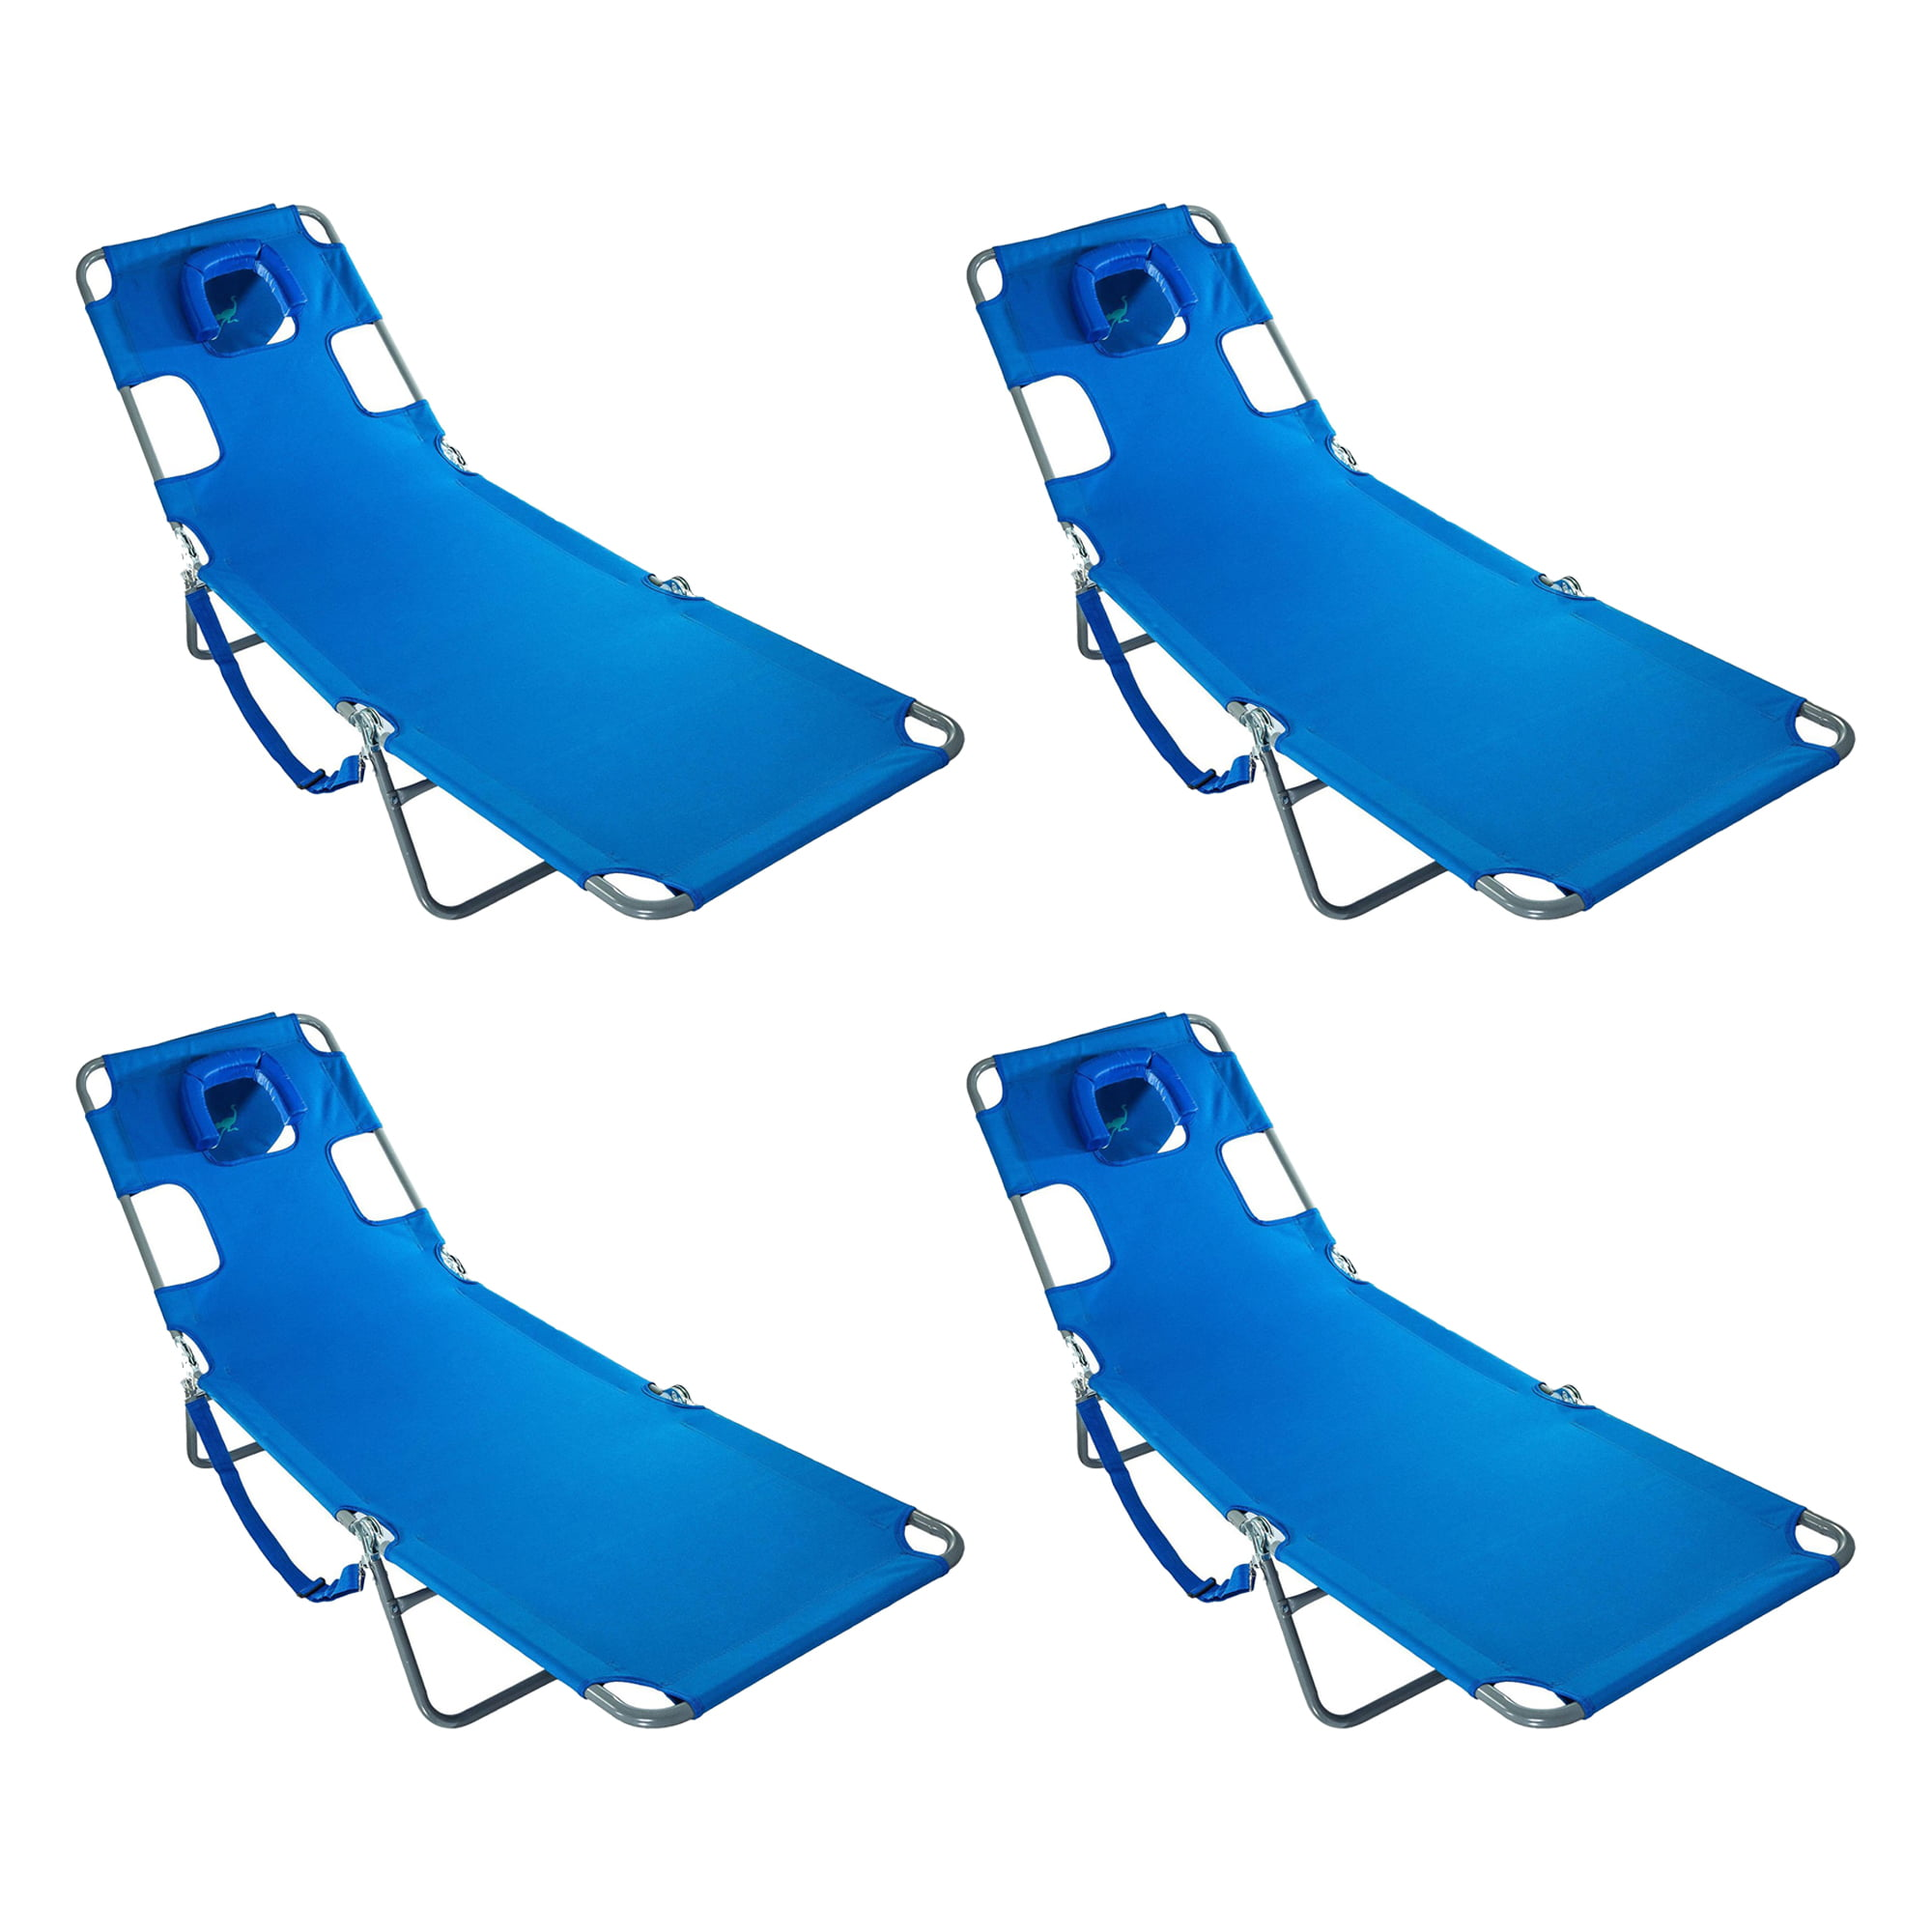 Ostrich Chaise Lounge Lightweight 3 Position Folding Beach Chaise Lounge